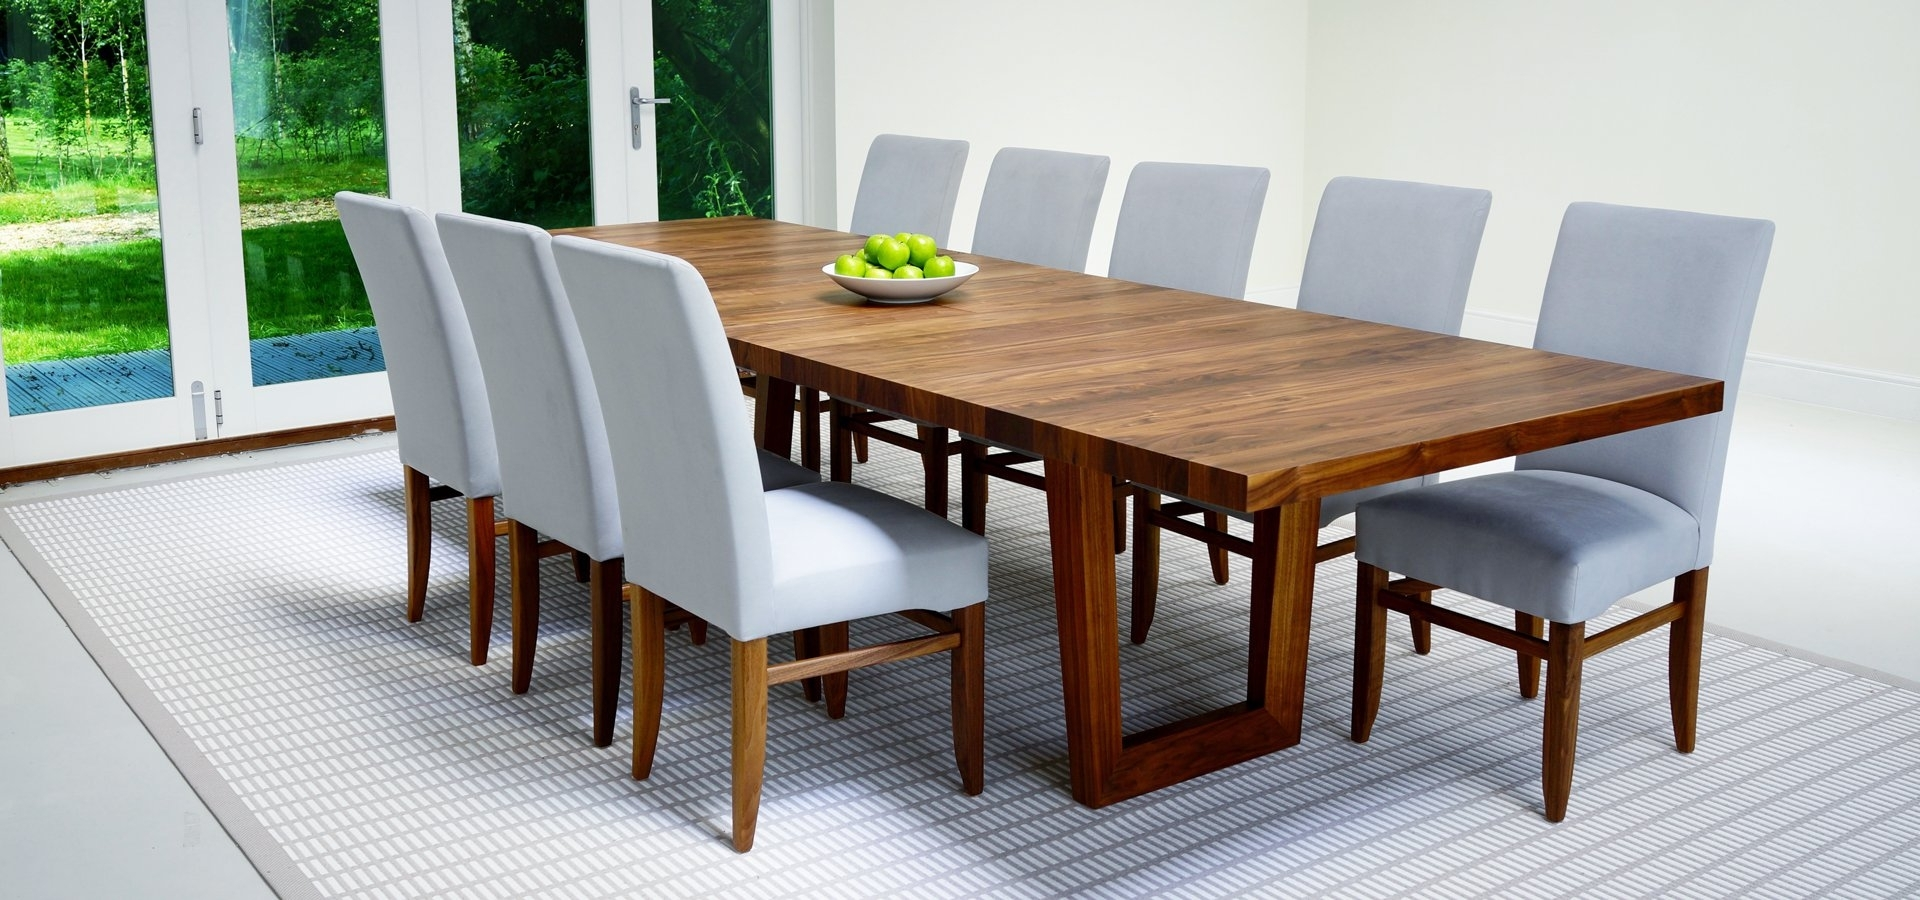 2018 Modern Extendable Dining Table Set – Castrophotos Inside Extending Dining Table And Chairs (Gallery 5 of 25)